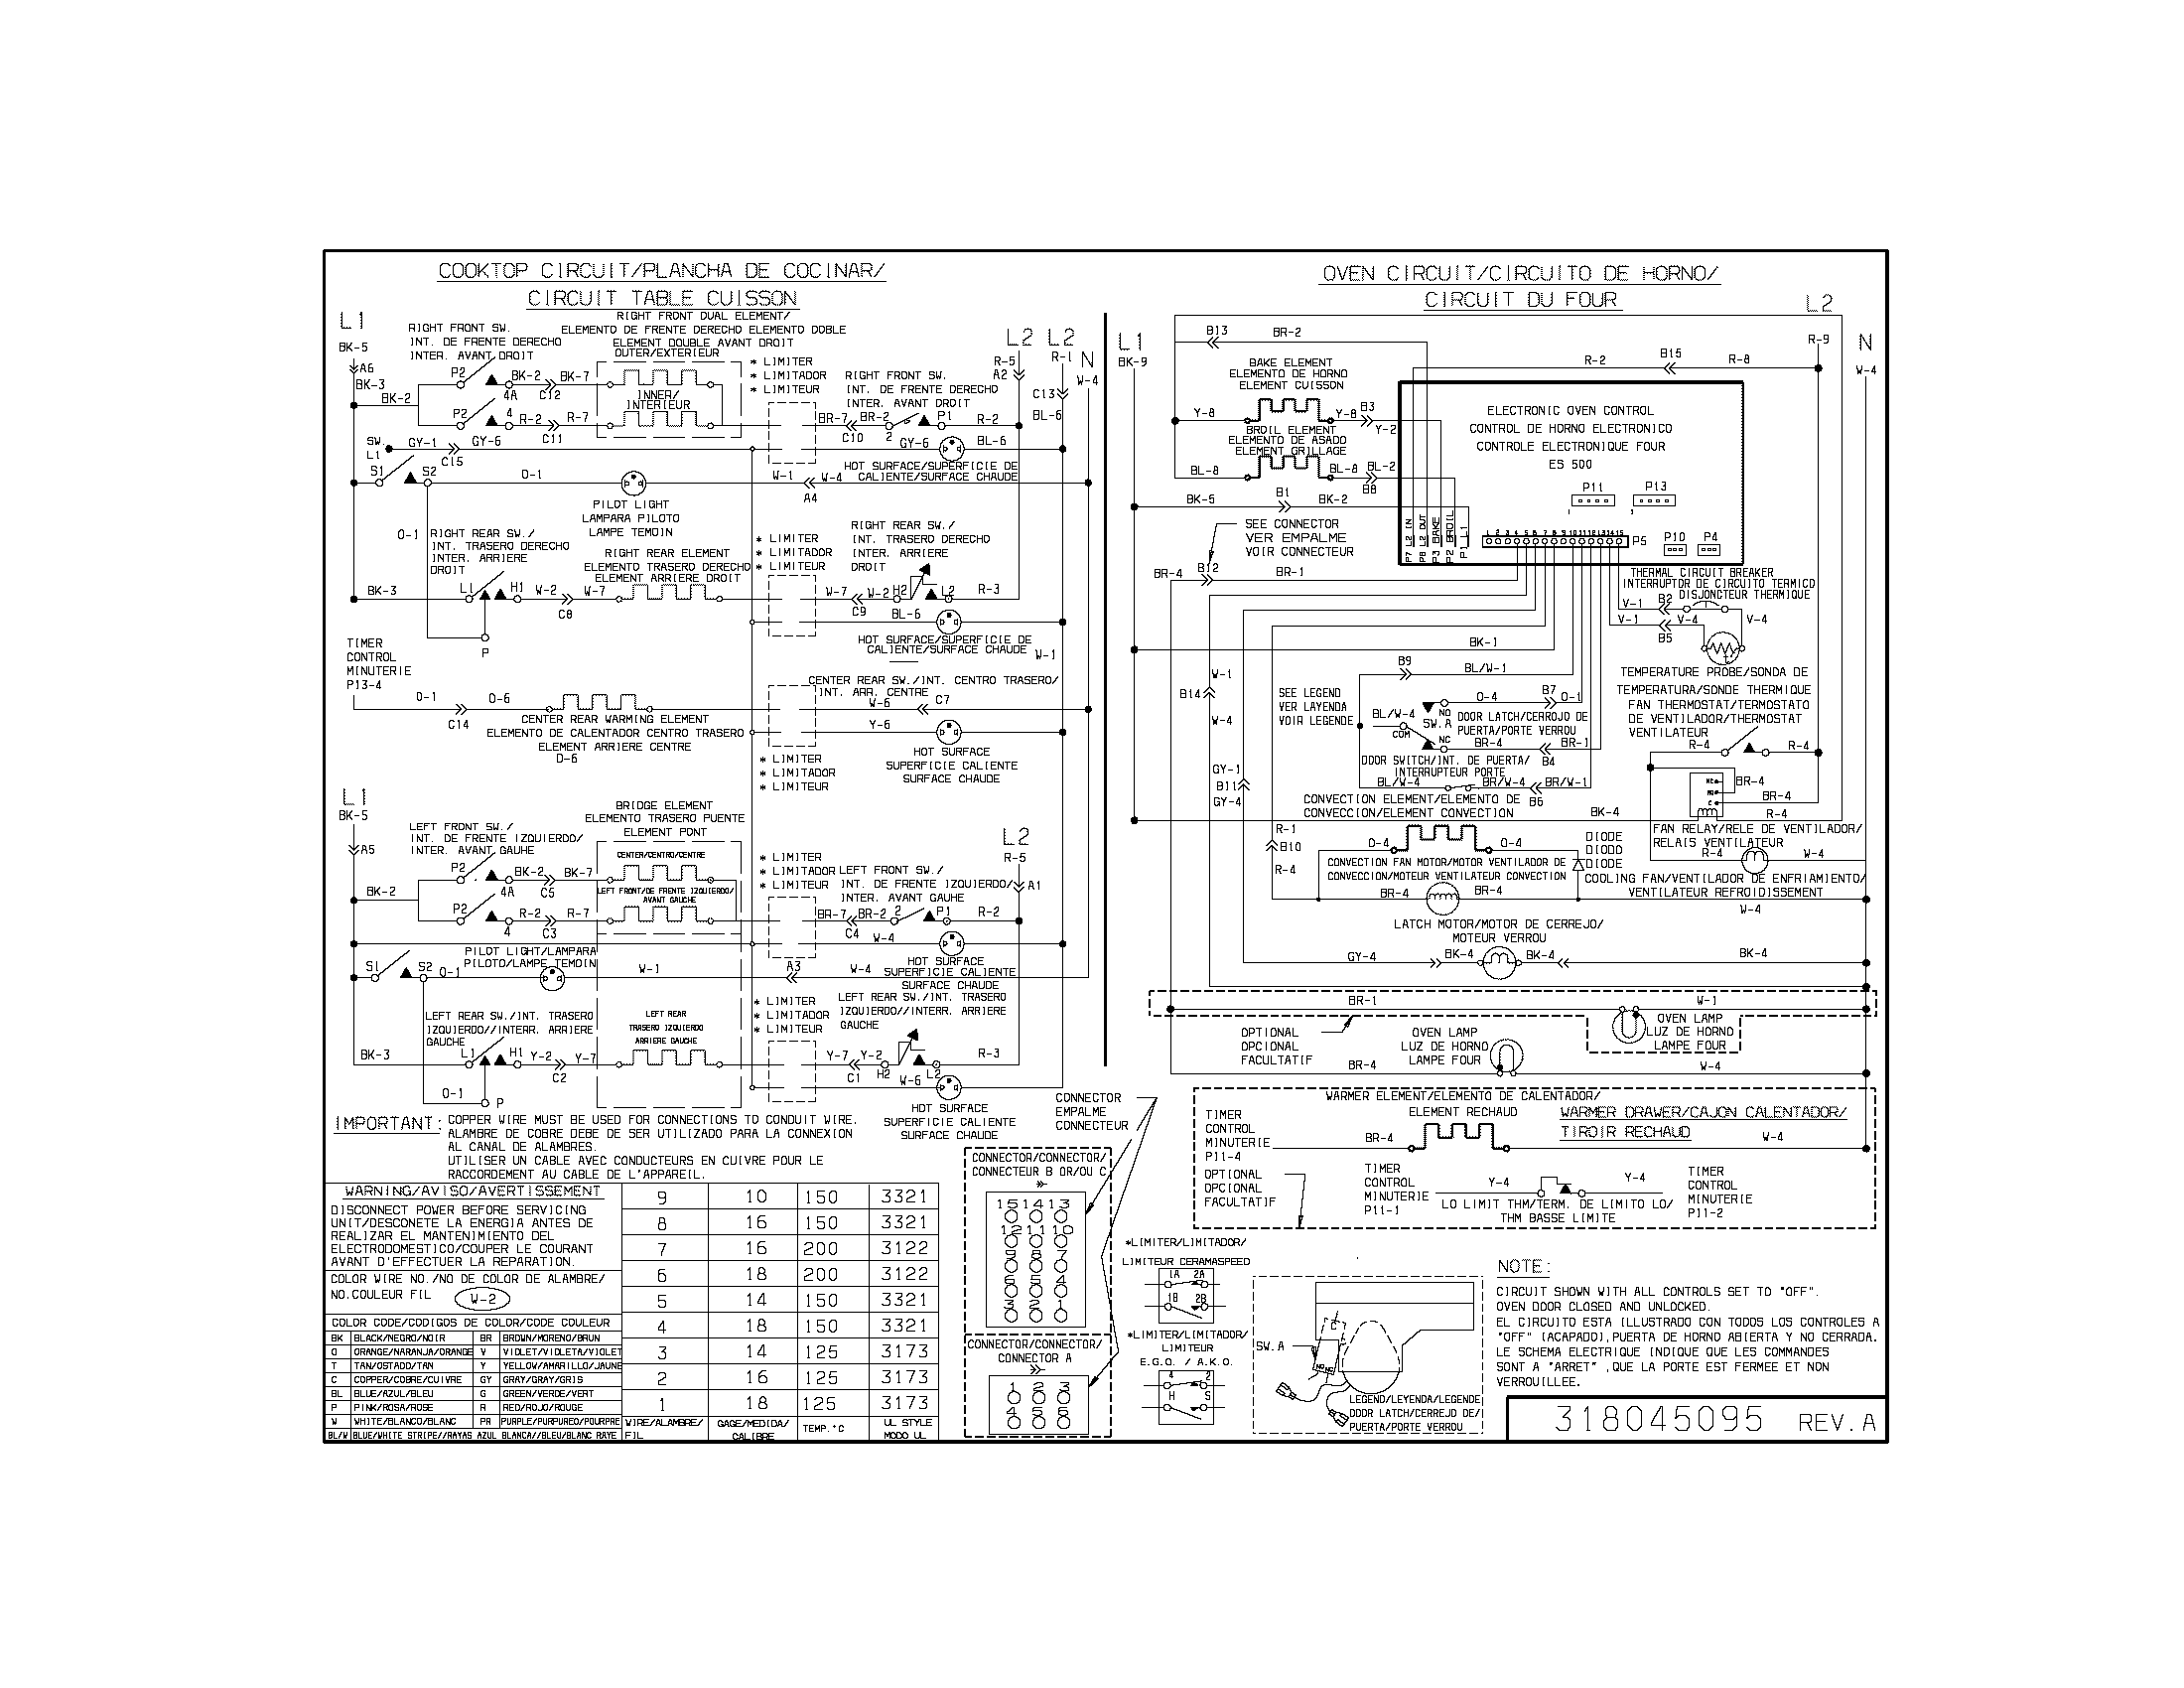 oven wiring diagram also ge electric stove parts diagram besides oven wiring diagram also ge electric stove parts diagram besides ge